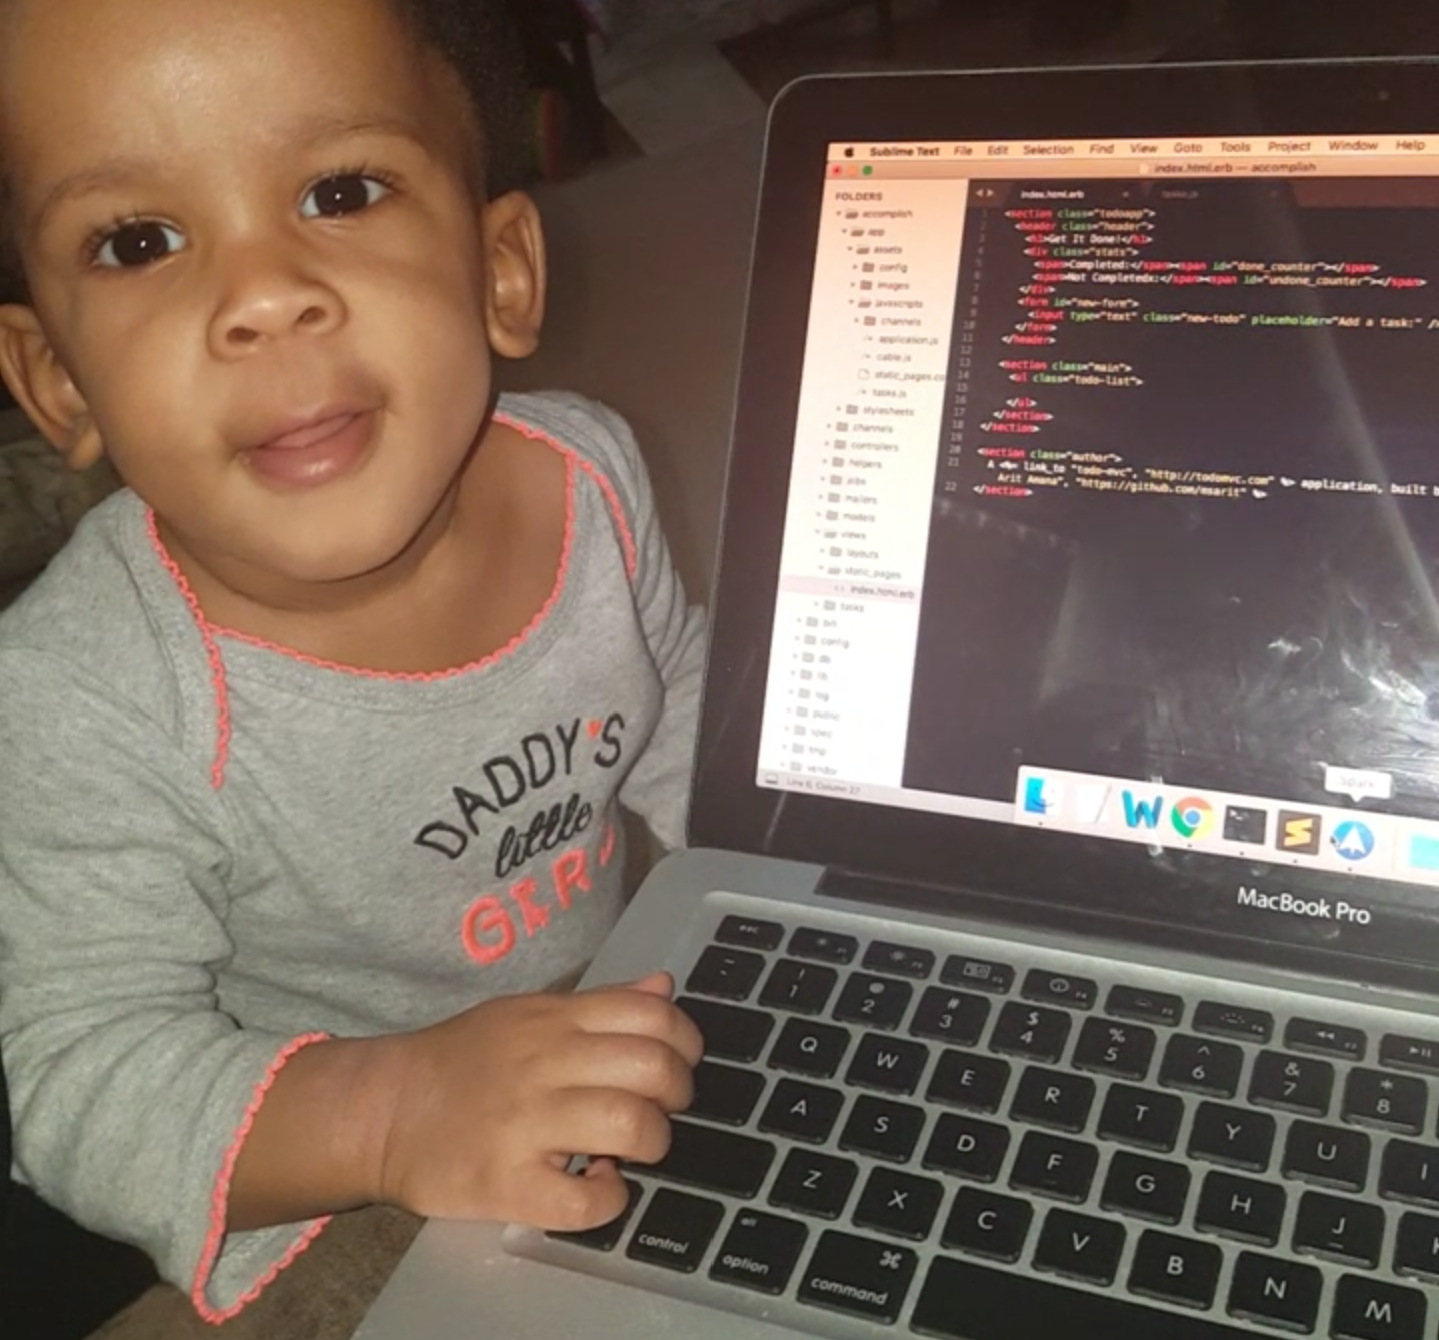 My macbook with some code displayed on the monitor, and my daughter on the right of the laptop, smiling with her hand on the keys.